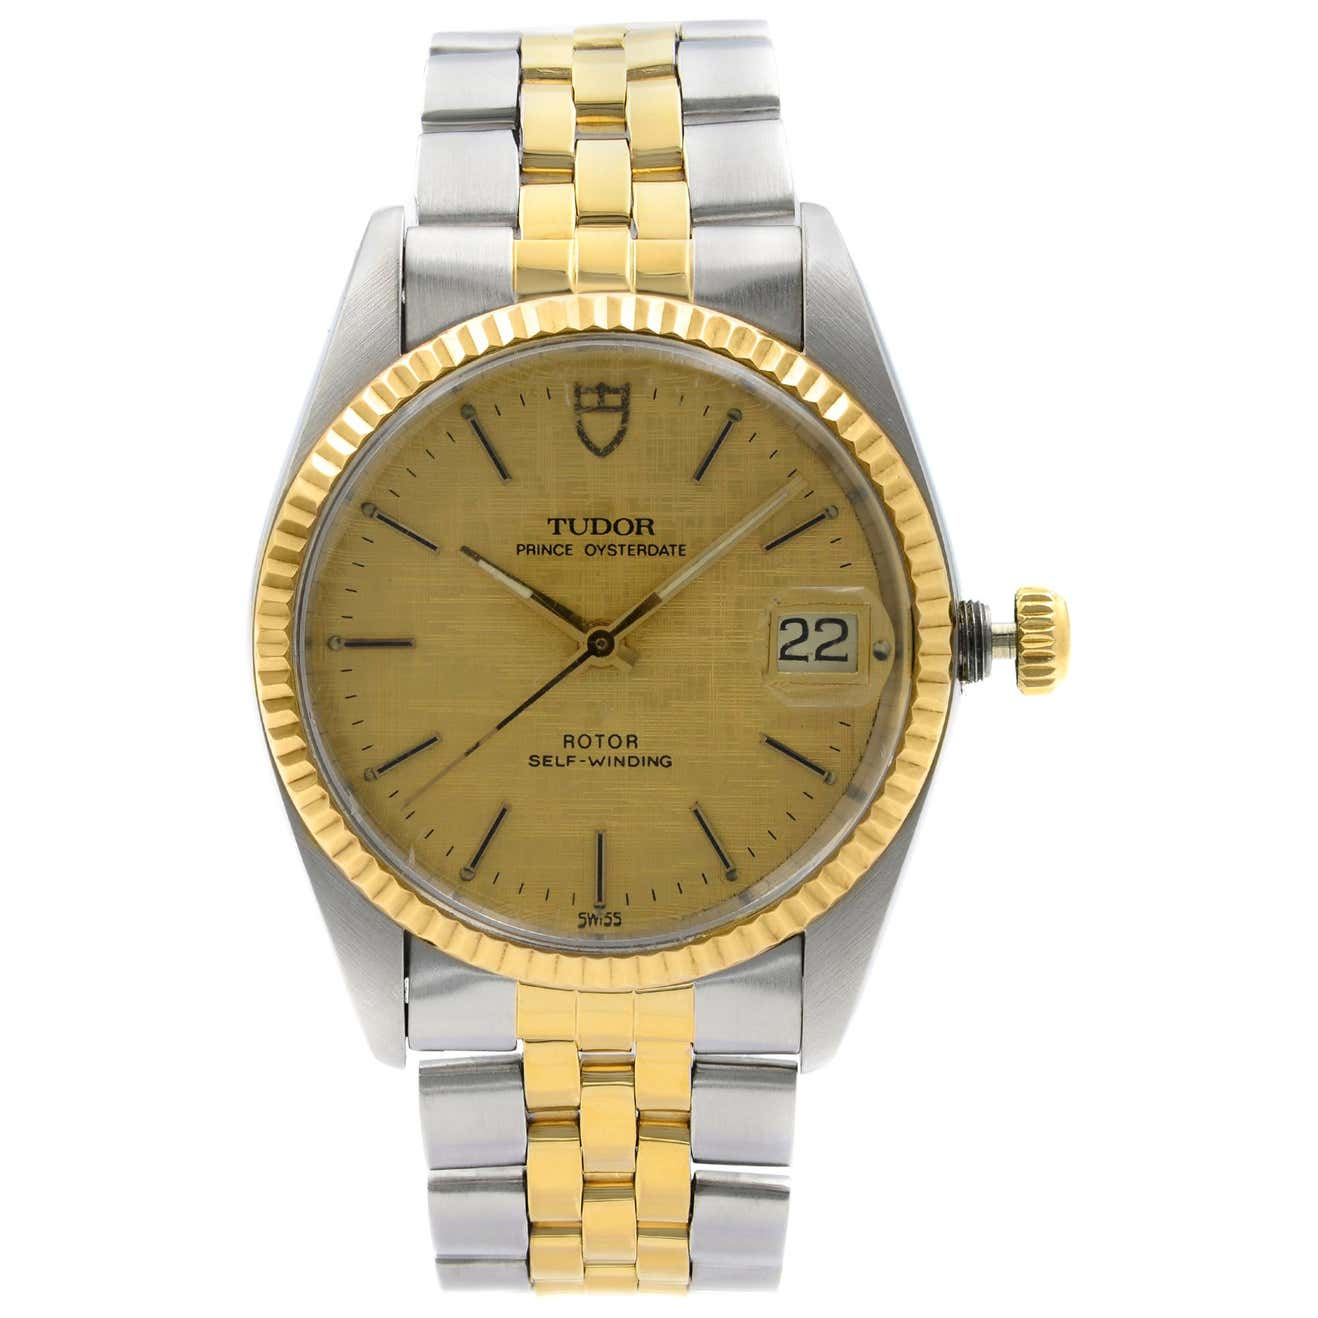 Tudor Prince Oysterdate 18k Yellow Gold Steel Satin Dial Automatic Watch 75203